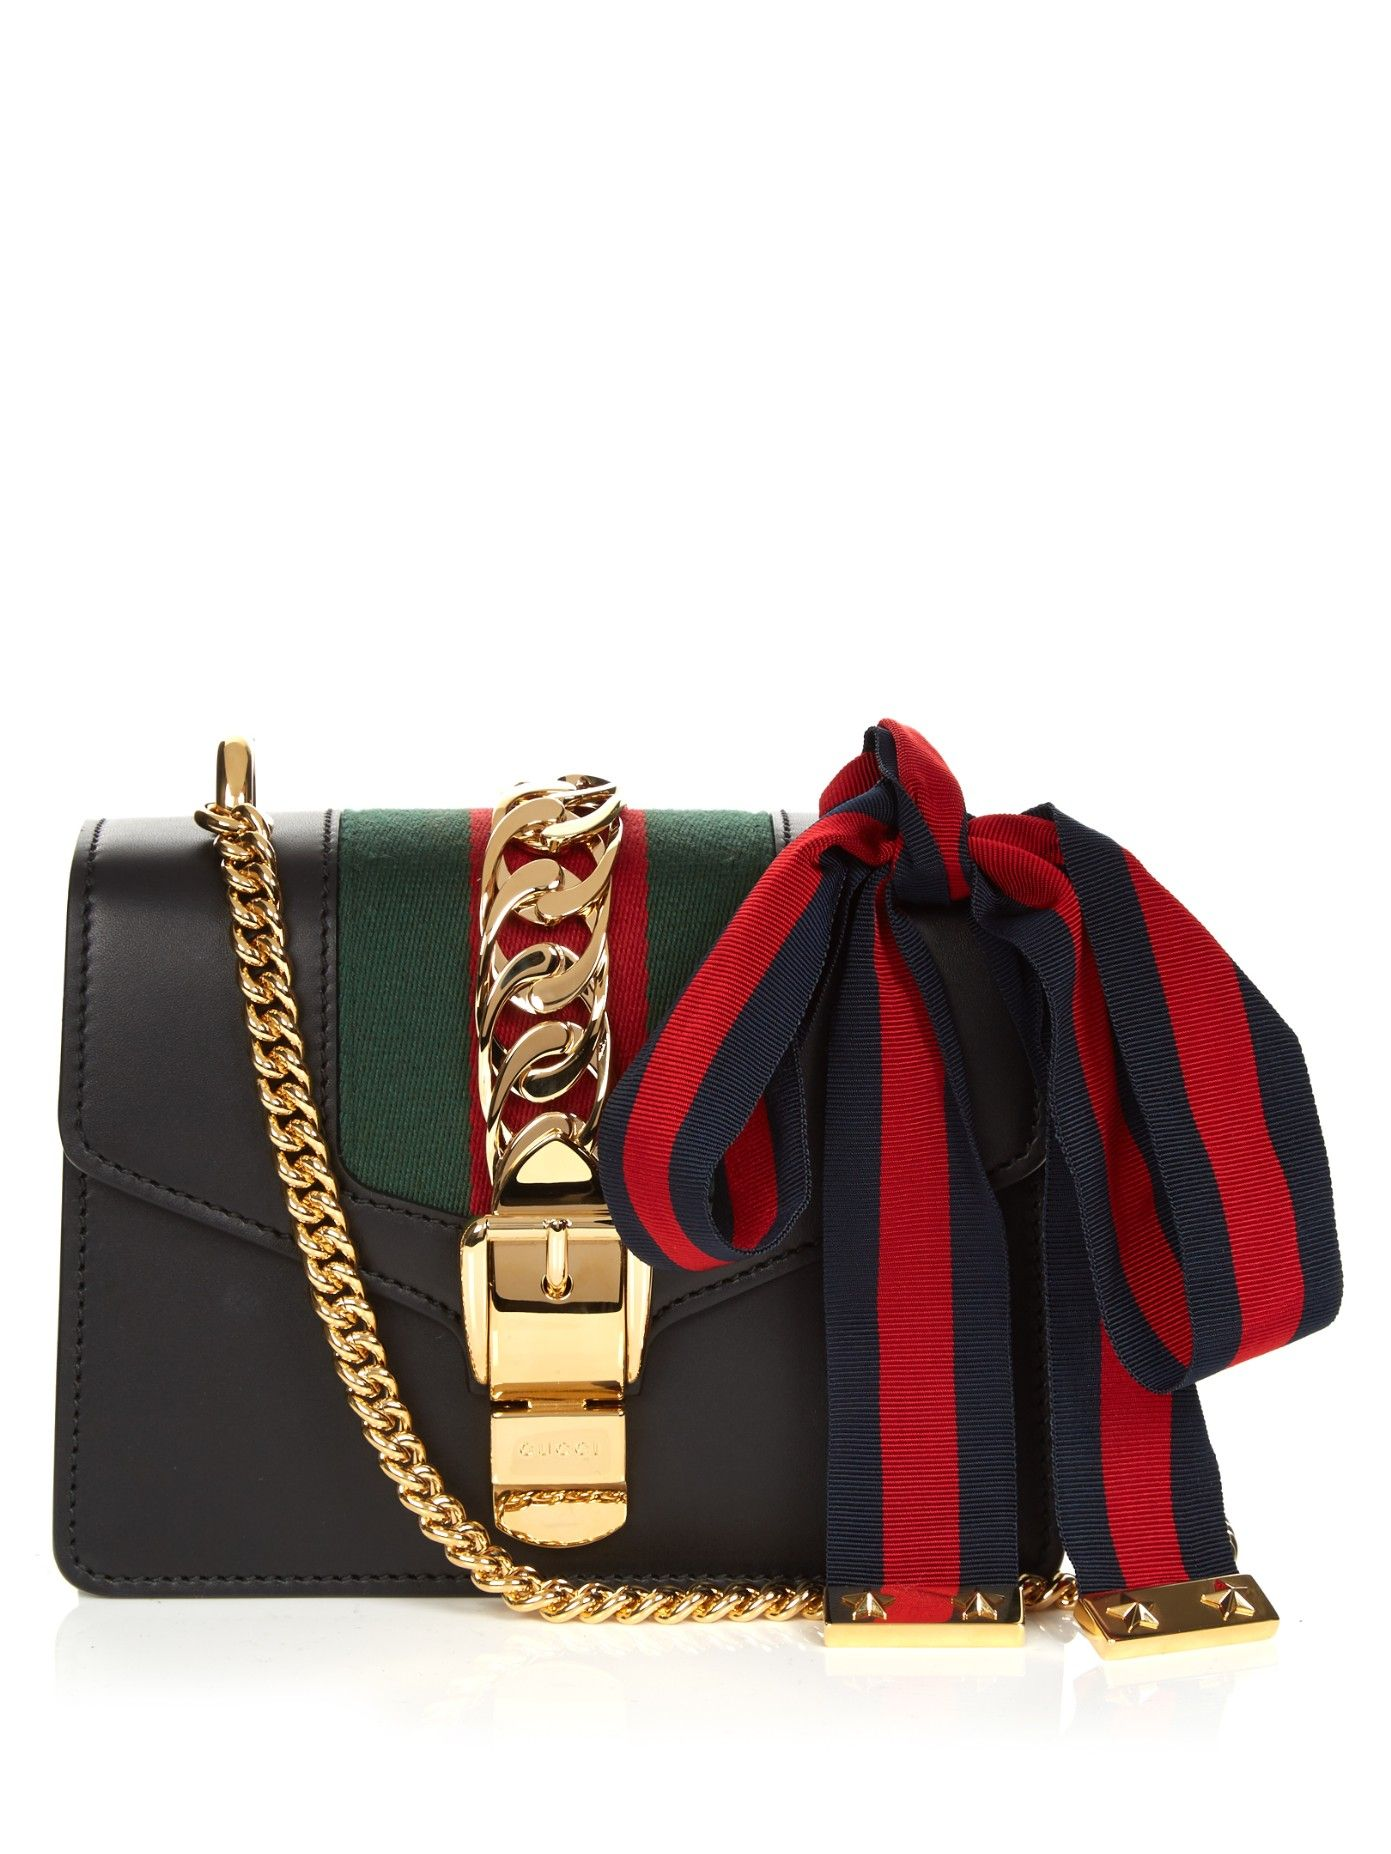 515b03bd2 GUCCI Sylvie mini leather cross-body bag | Bags | Leather crossbody ...